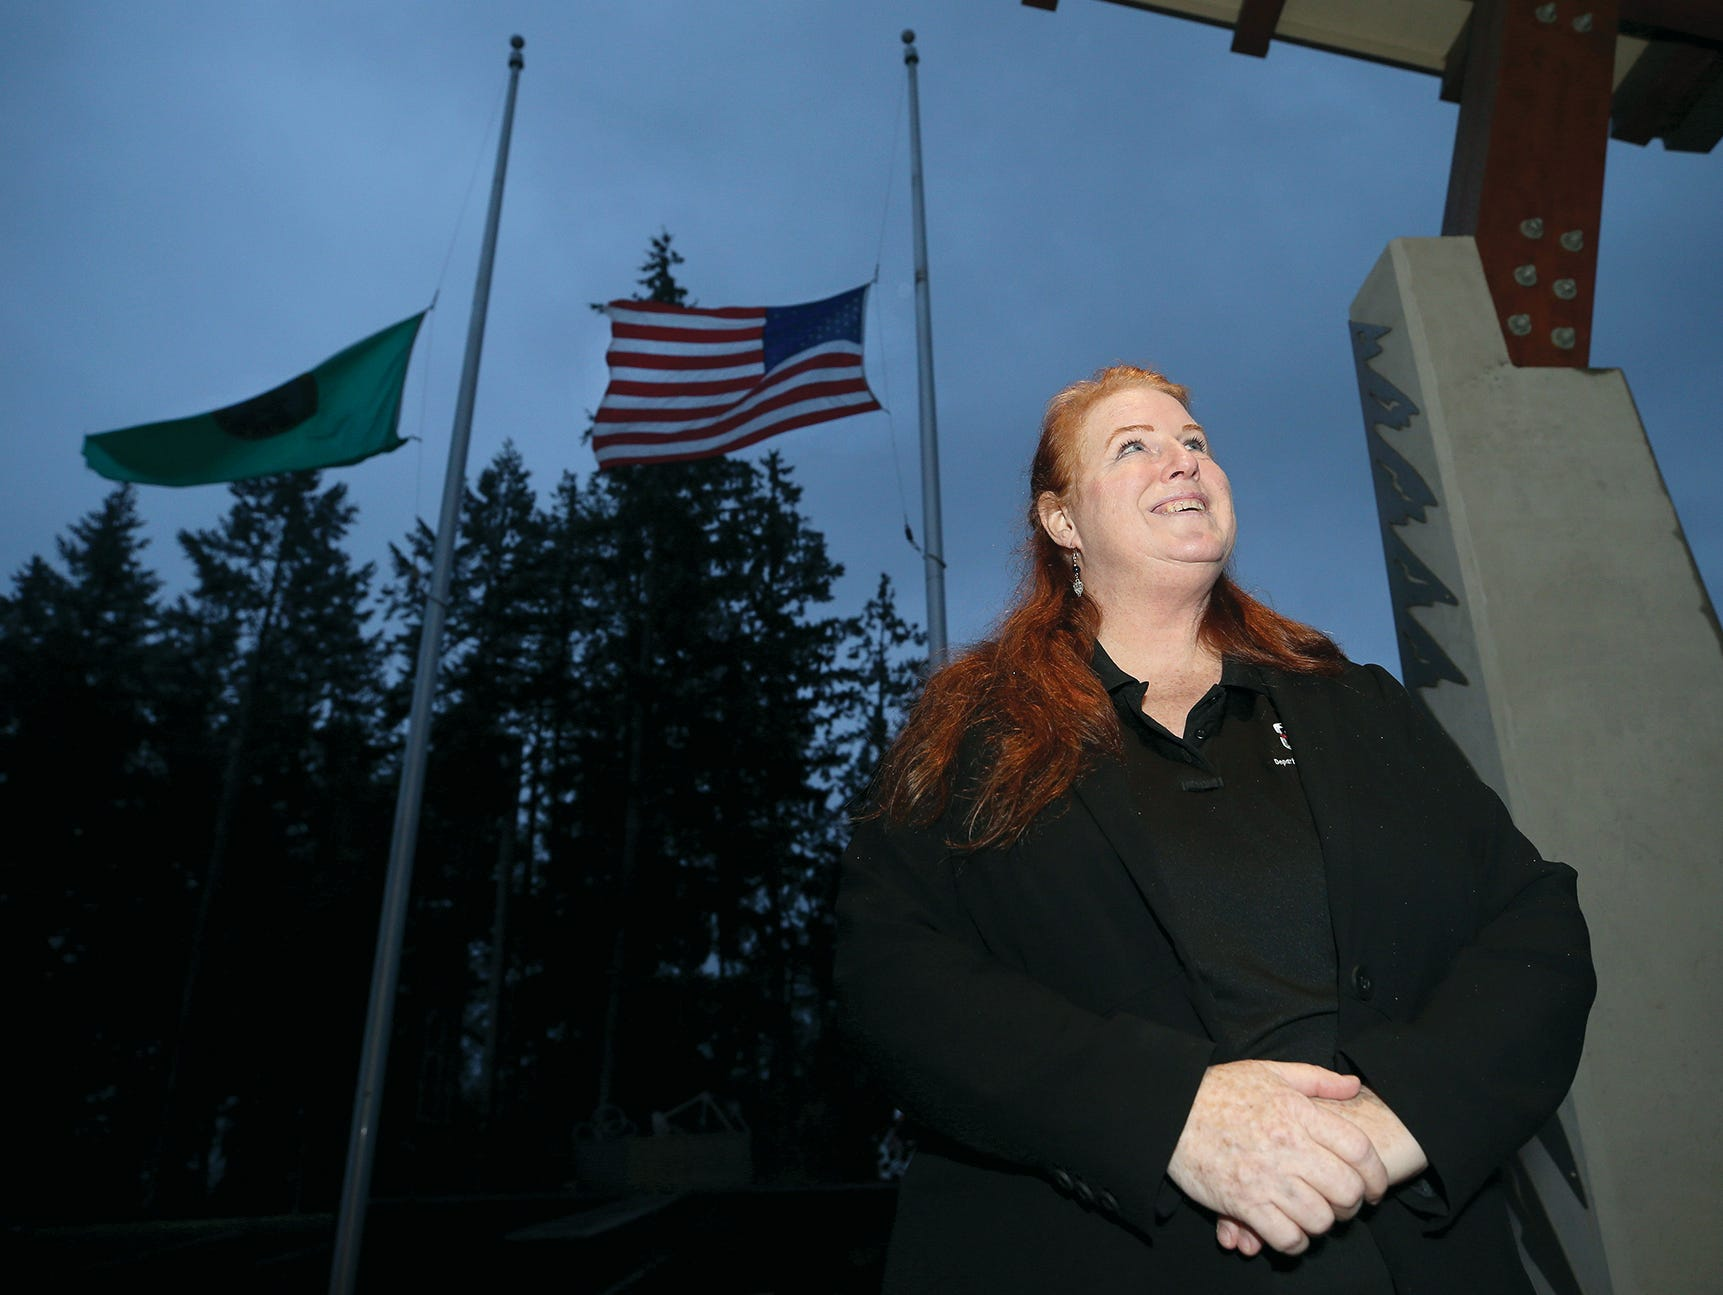 Lis Klute, Kitsap County's new emergency management director, used to work for Amtrak, where she developed and carried out such emergency management plans for the Dec. 18, 2017 train derailment at Dupont. As the one year anniversary approaches, Klute is working to implement similar emergency plans here in Kitsap.